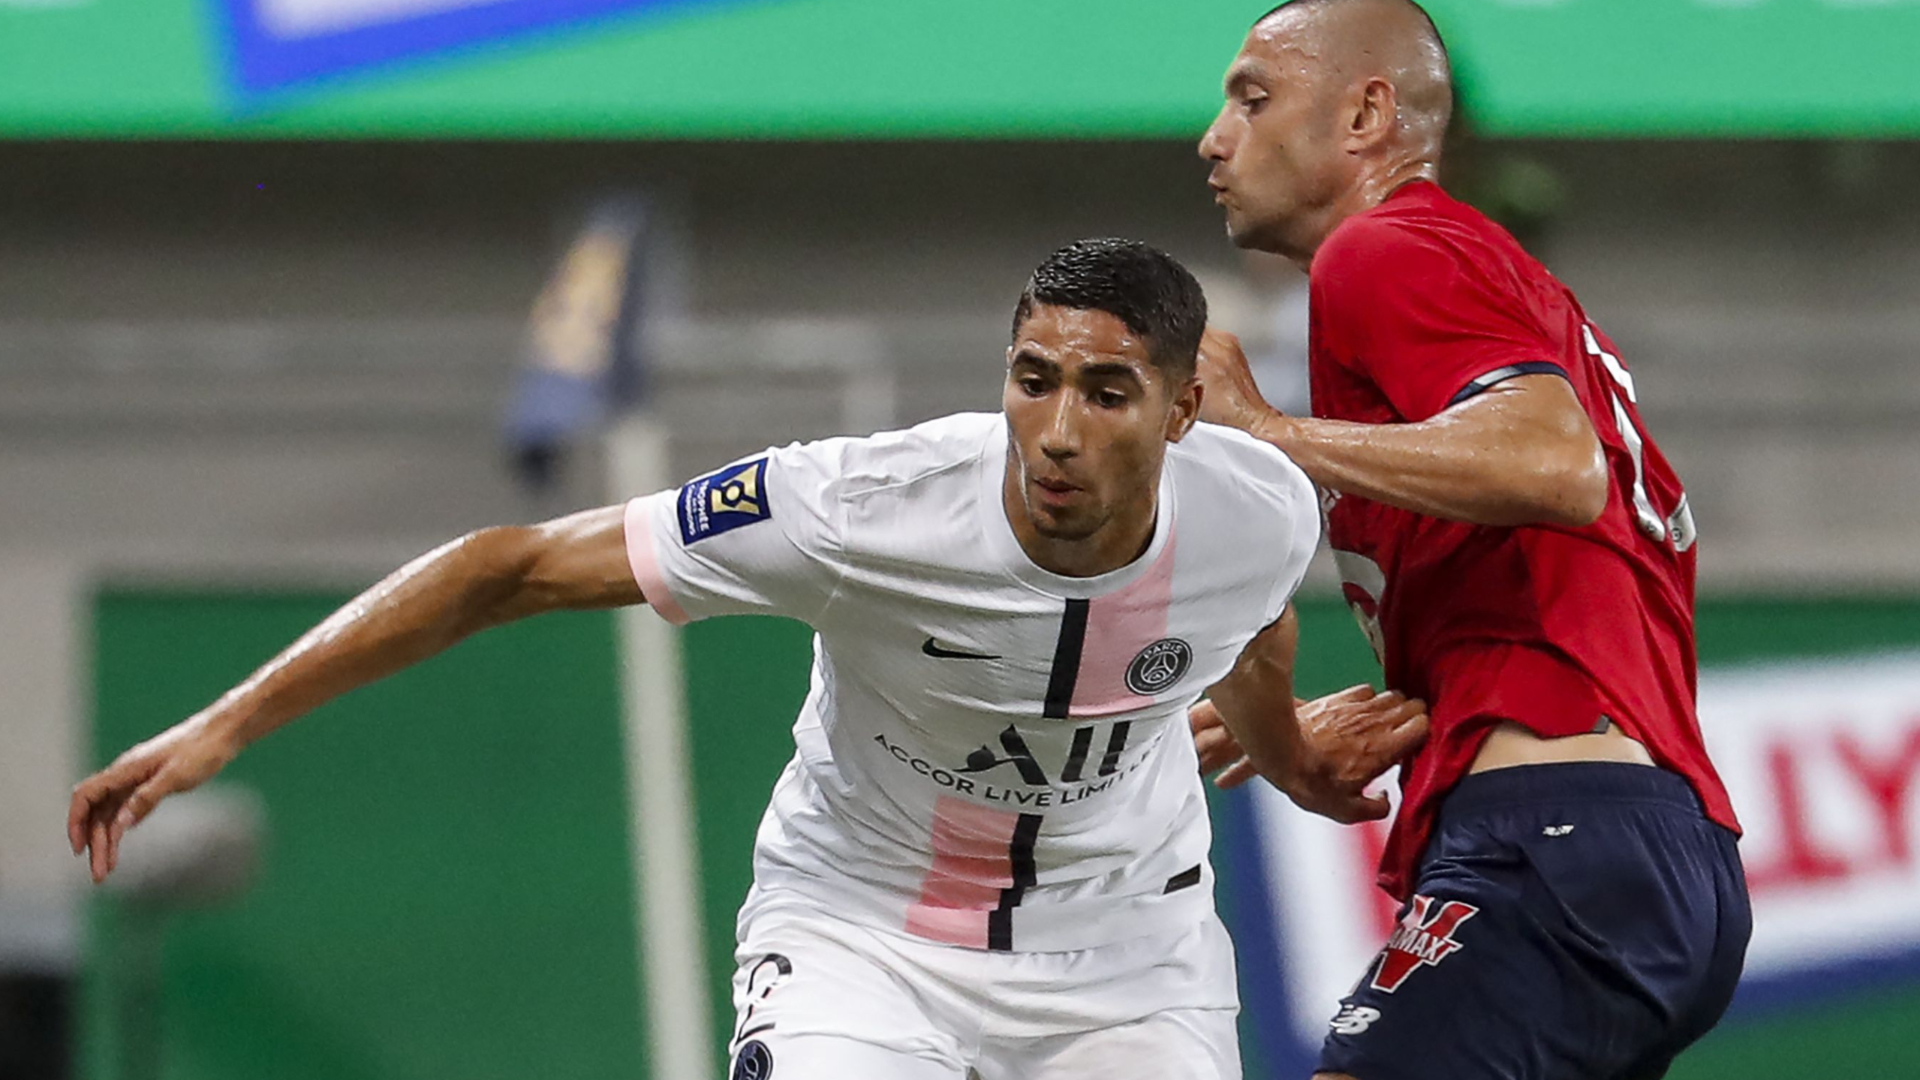 Video: 2021/22 Season - Africans to watch in Ligue 1